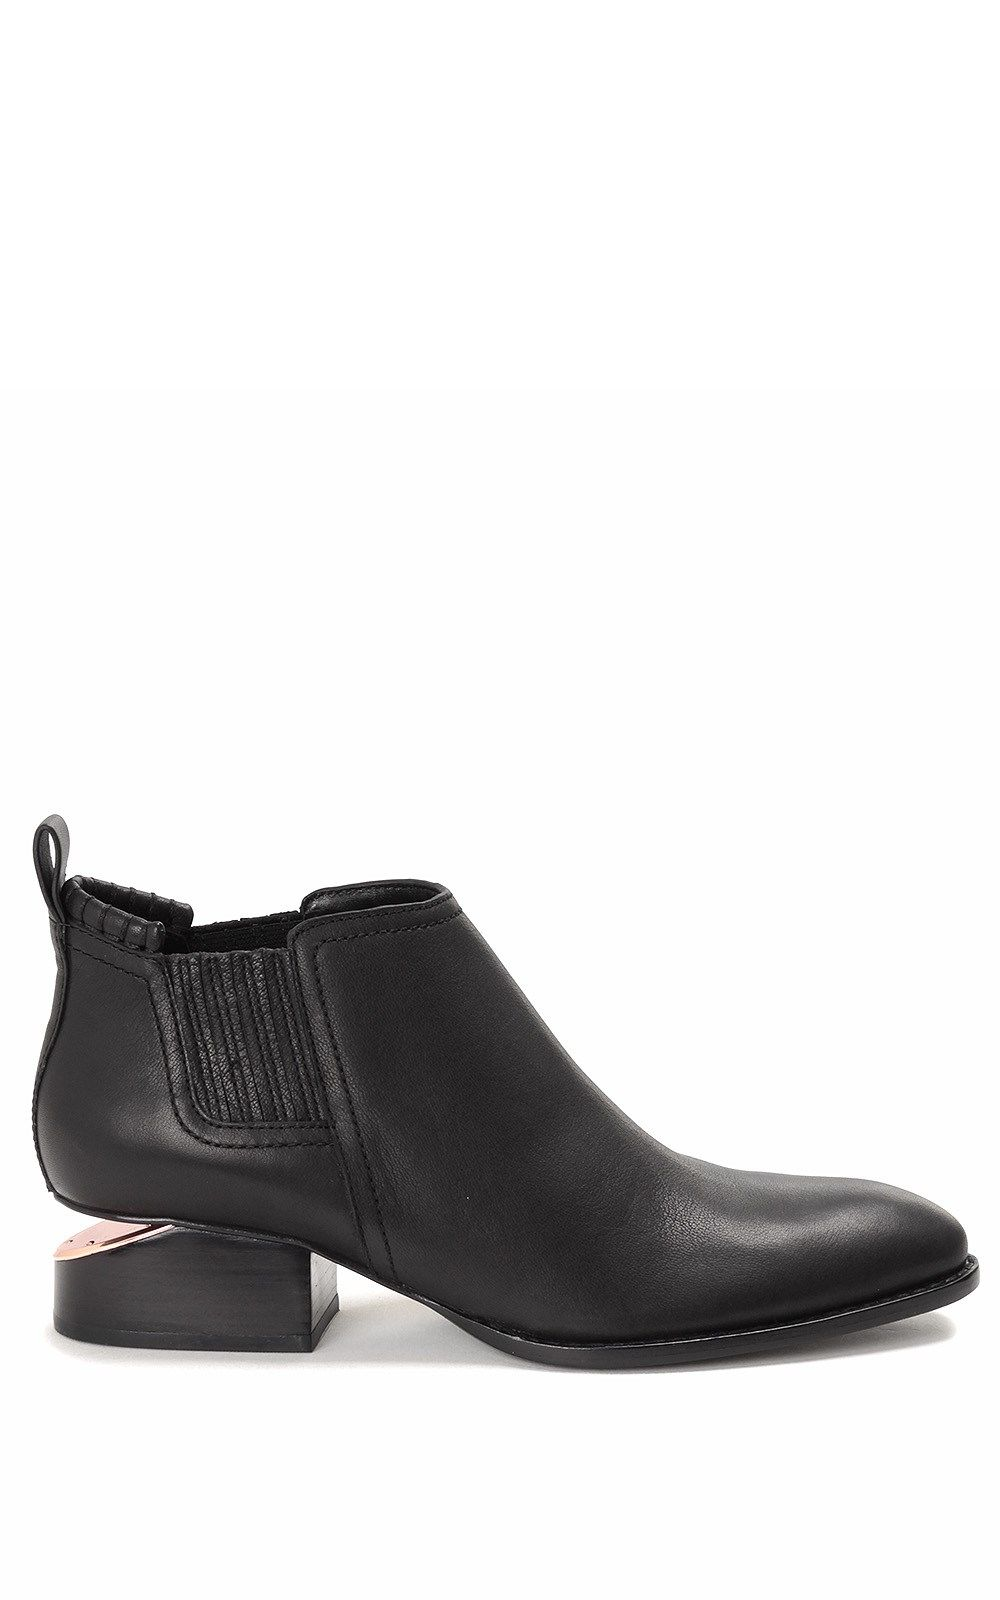 Alexander Wang Kori Cut-out Leather Ankle Boots